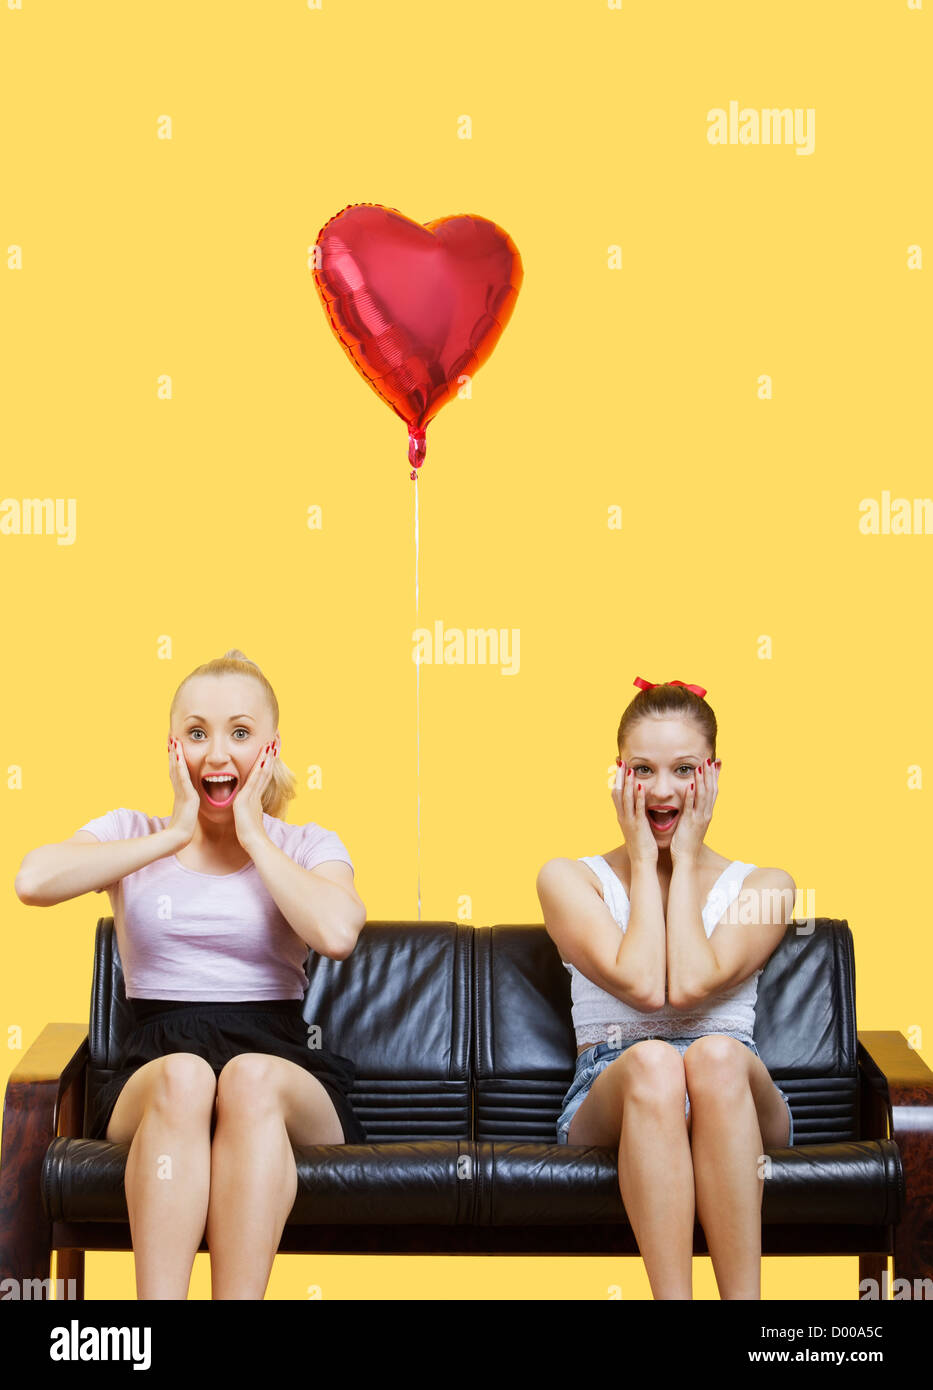 Portrait of two amazed young women sitting on sofa with heart shaped balloon over yellow background - Stock Image